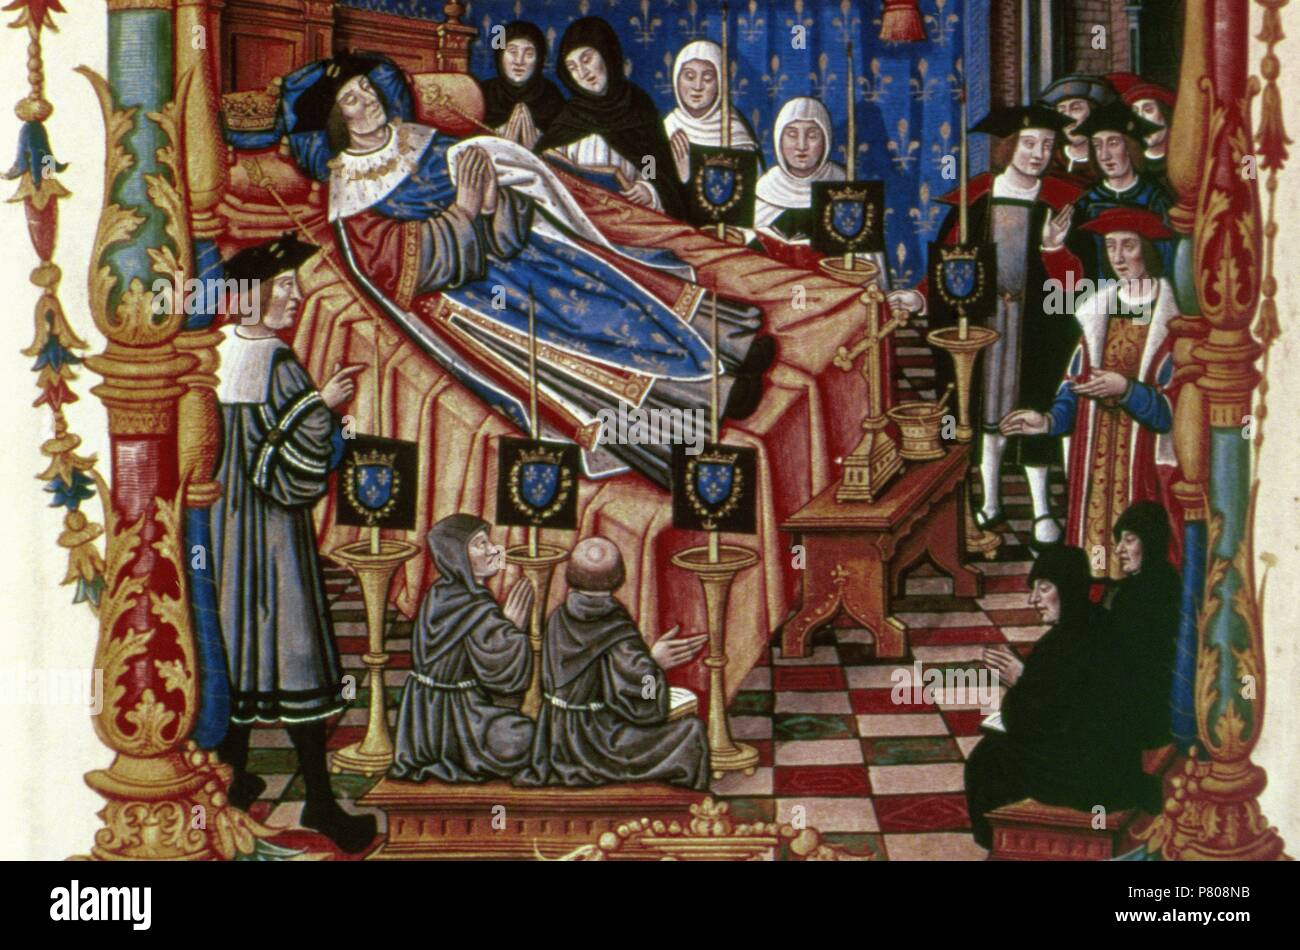 Louis XI of France (1423-1483). Monarch of House of Valois. King of France,  1461-83. Miniature. The Death of Louis XI at his castle, Plessis-les-Tours,  ...